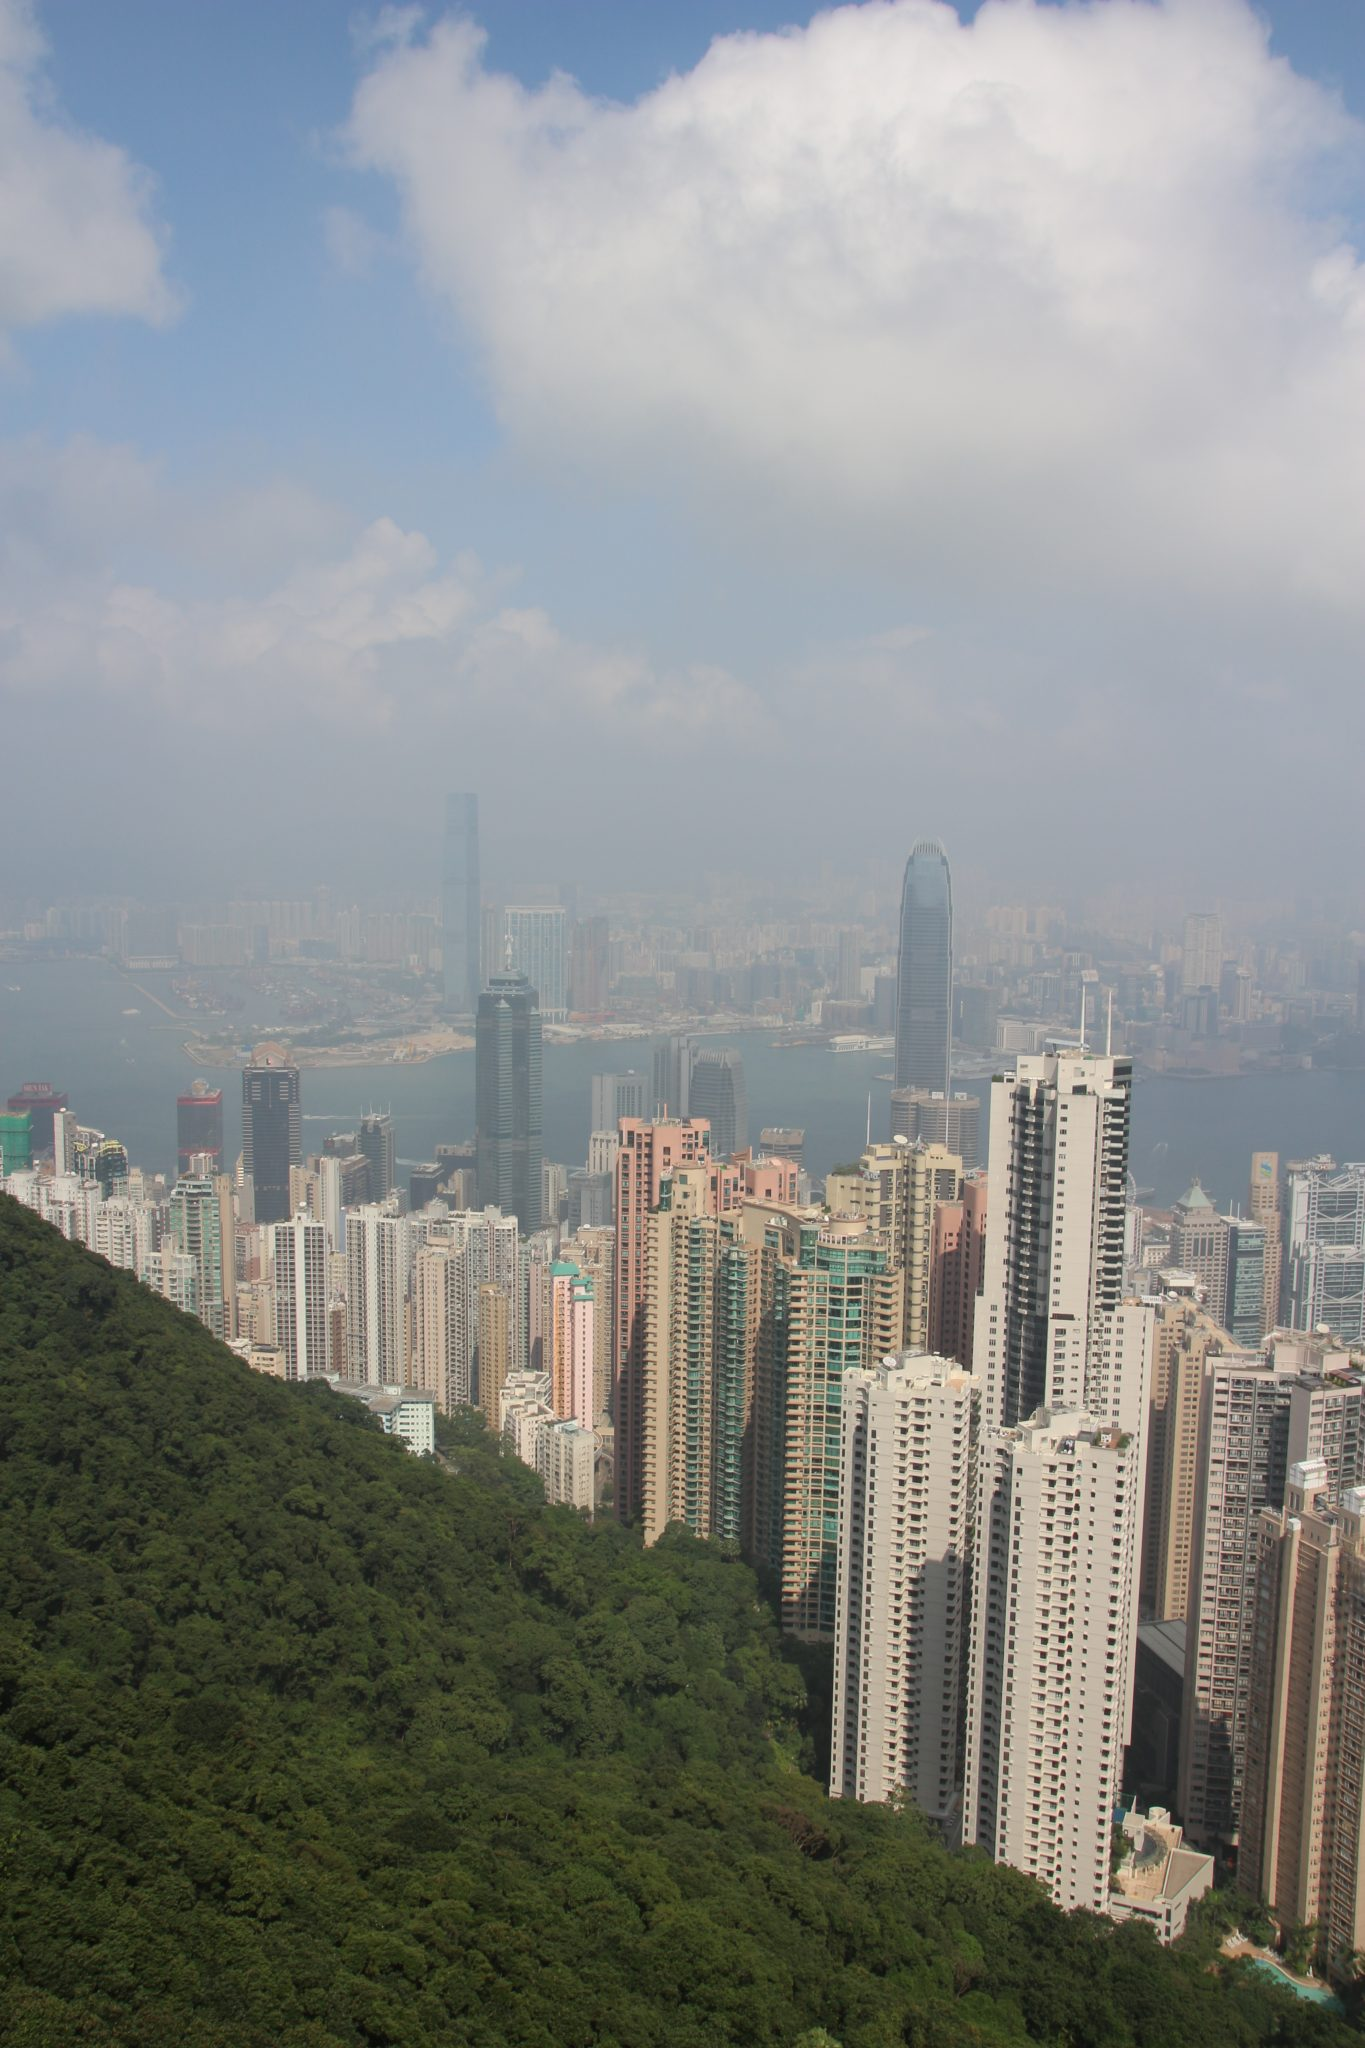 Another shot of the amazing Hong Kong skyline from Victoria Peak